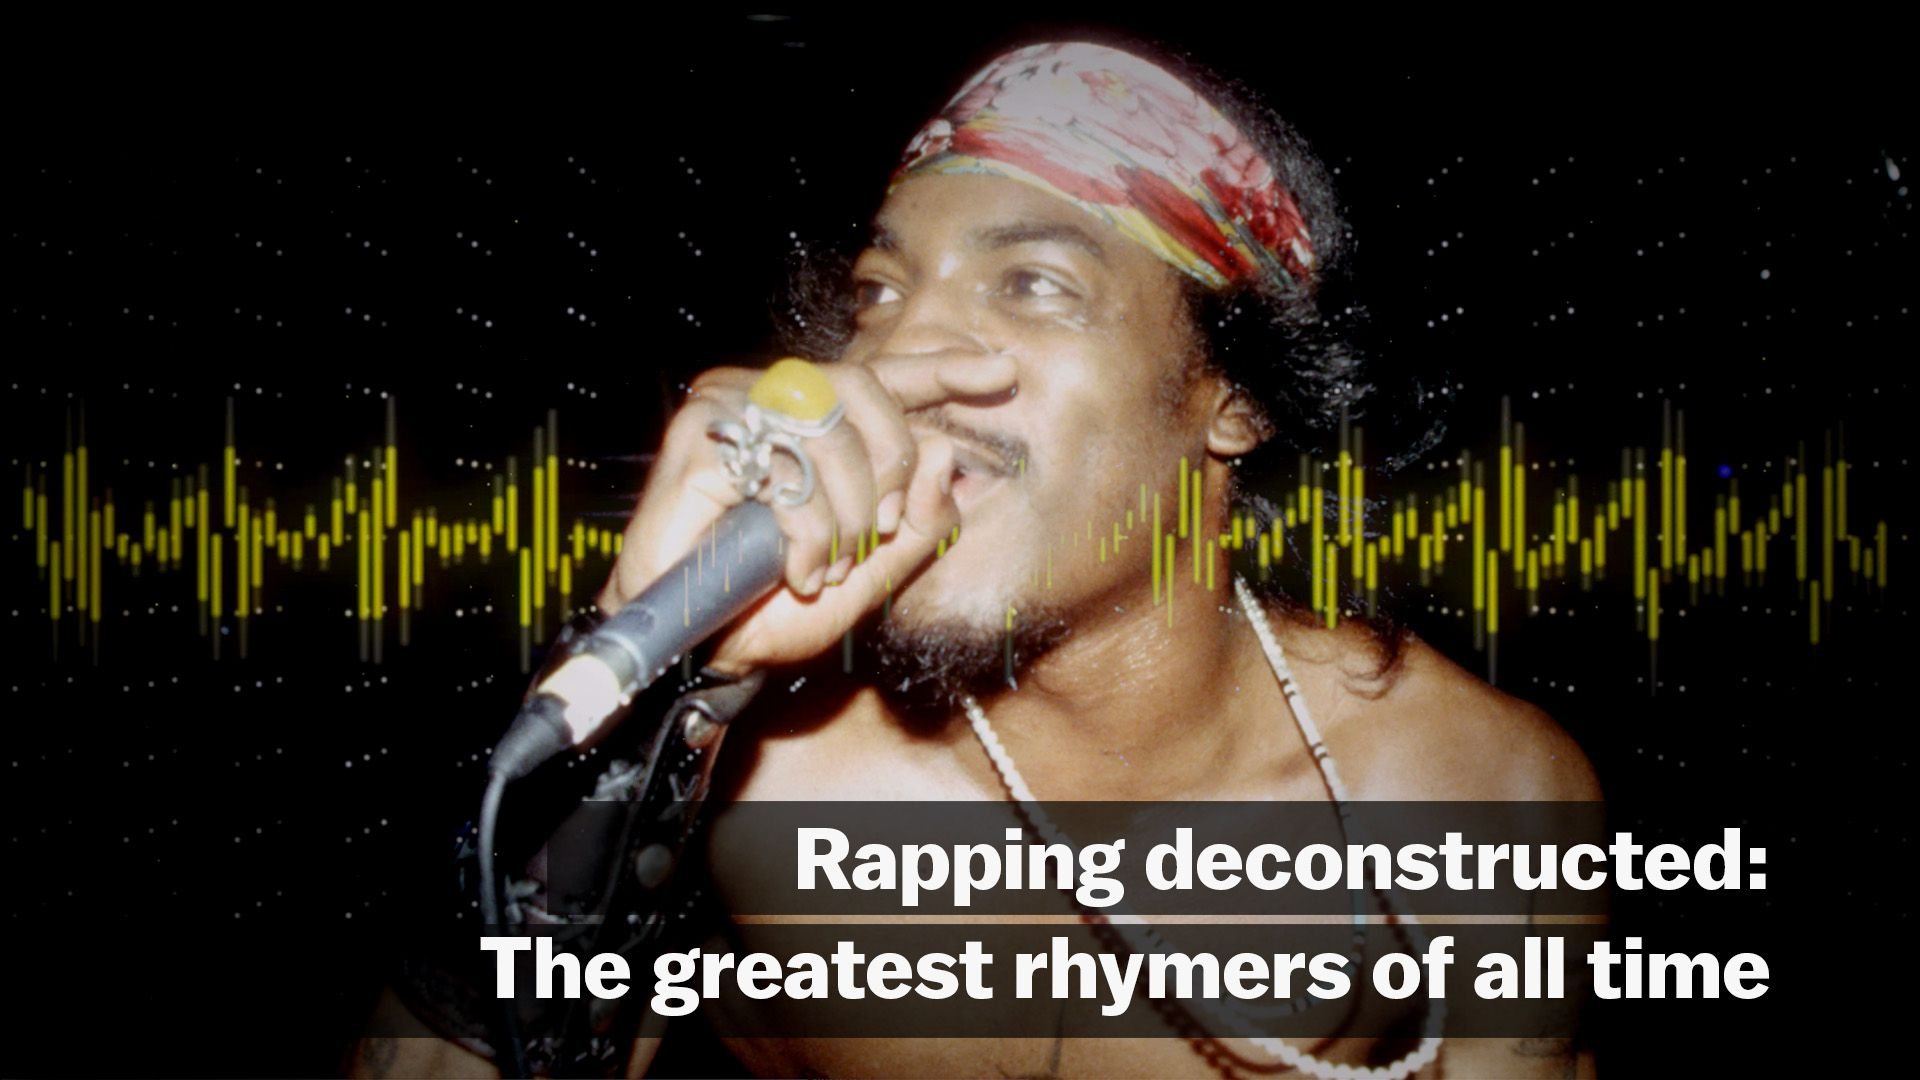 rapping deconstructed the best rhymers of all time vox